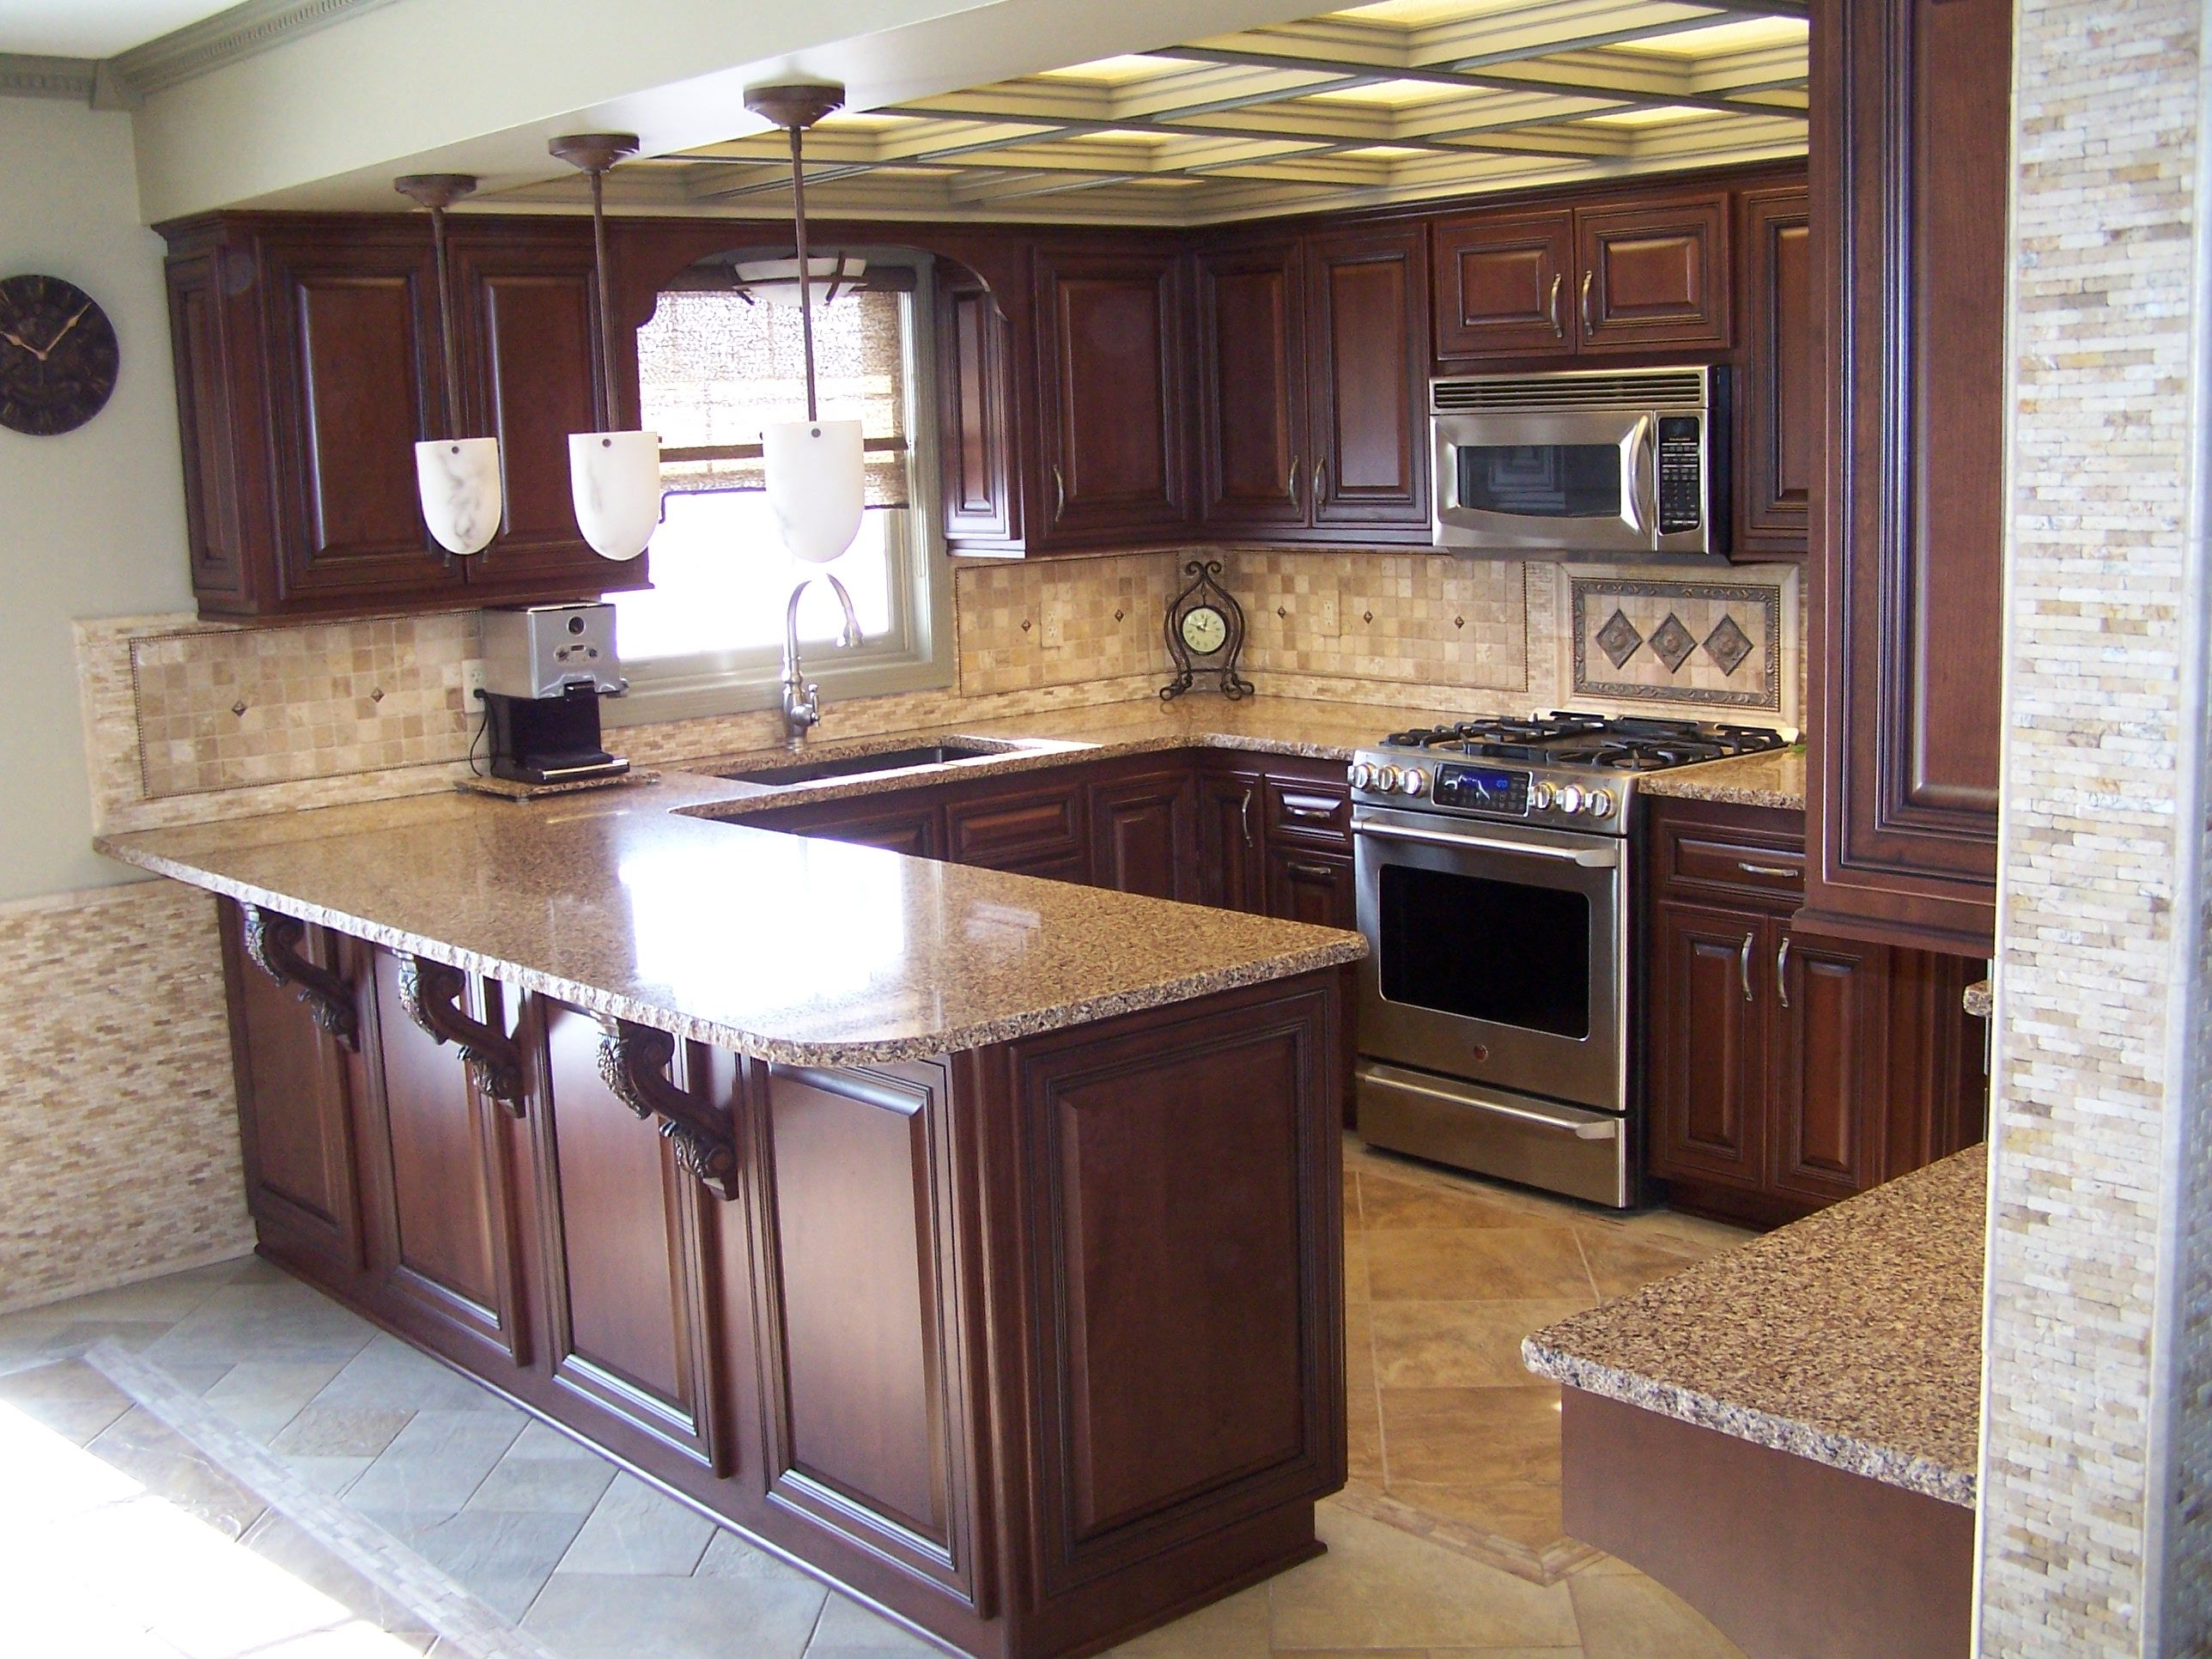 love the color of the cabinets and backsplash idea our tile and color scheme maybe remodel ideas - Newly Remodeled Kitchens